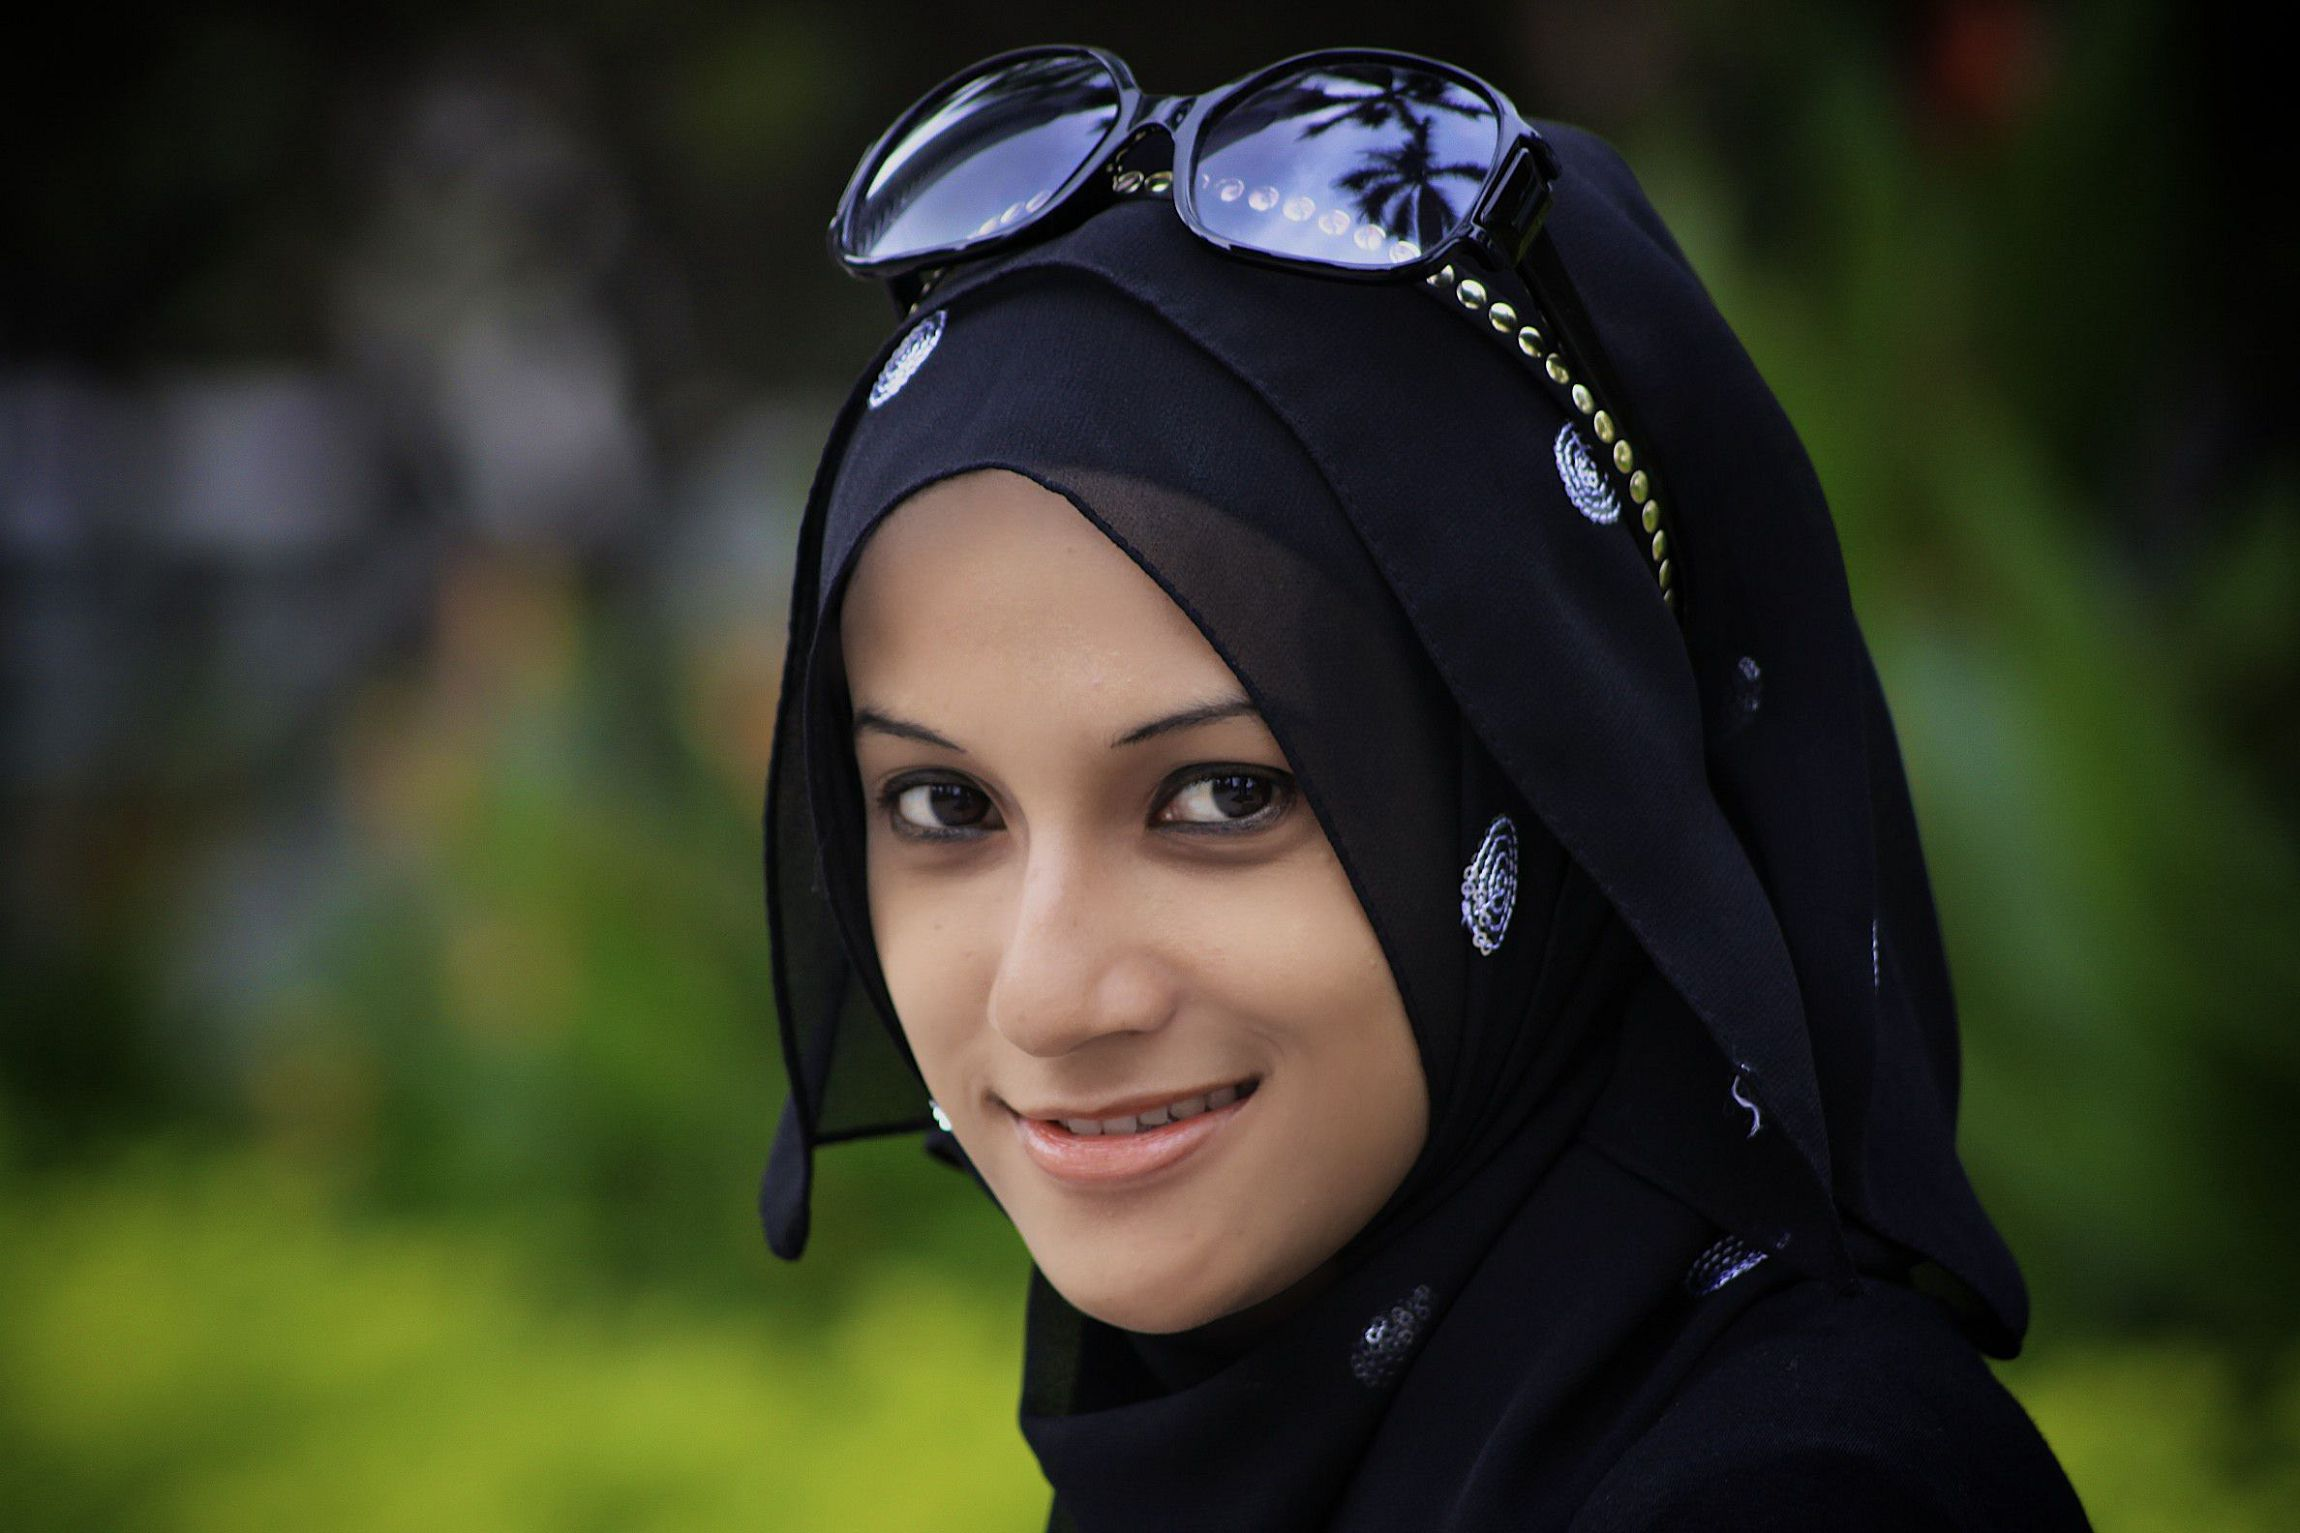 Arab Girl Wallpapers